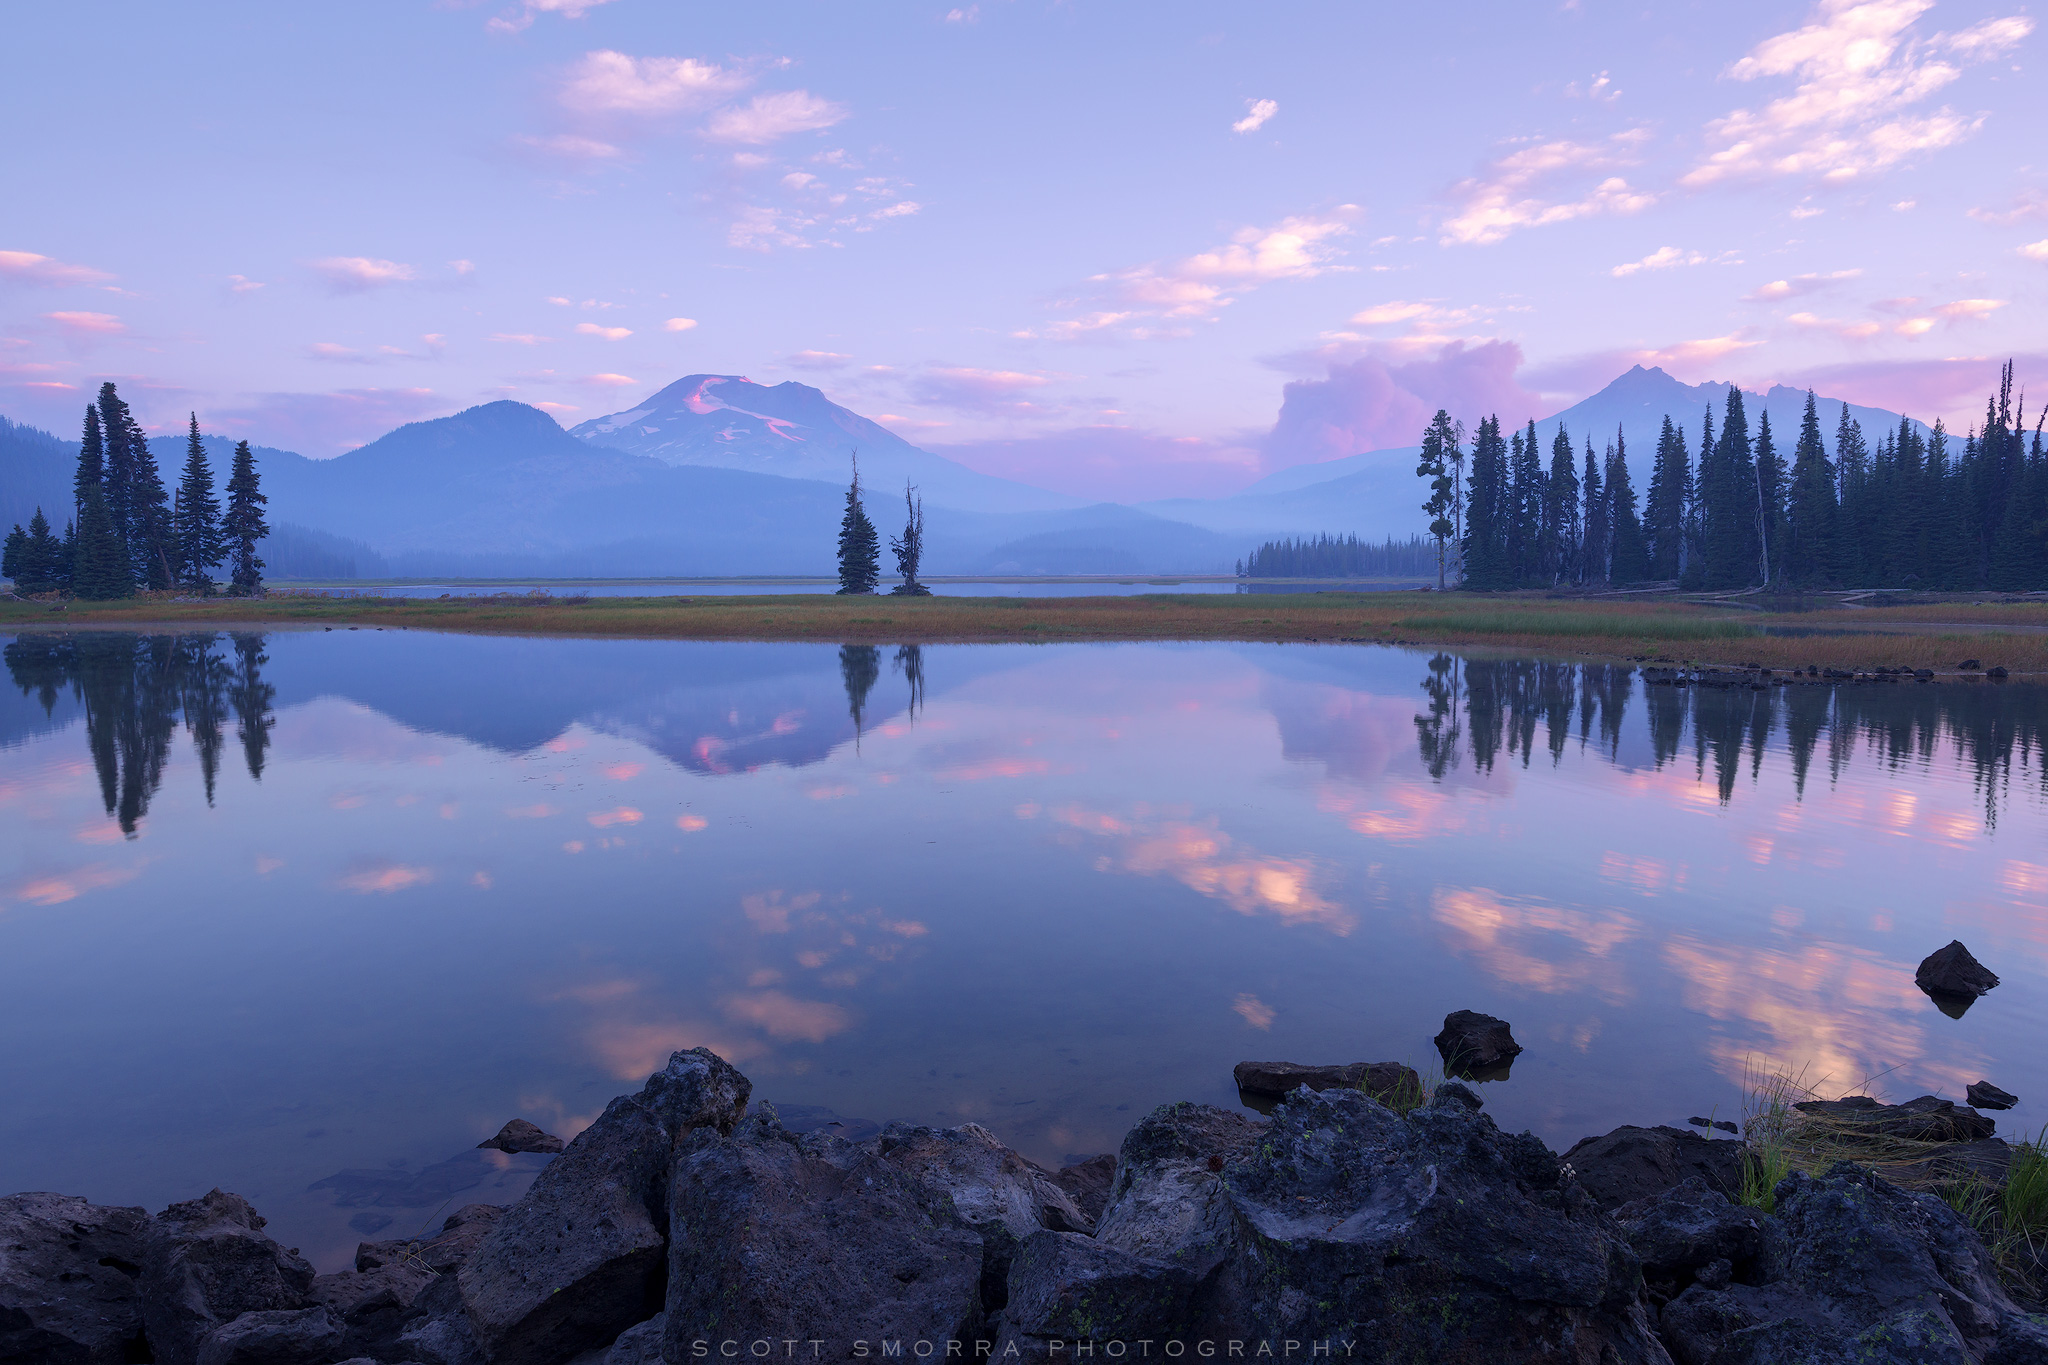 Fine Art Limited Edition of 50 - A late summer sunrise at Sparks Lake, Deschutes National Forest, Central Oregon Cascades. The...